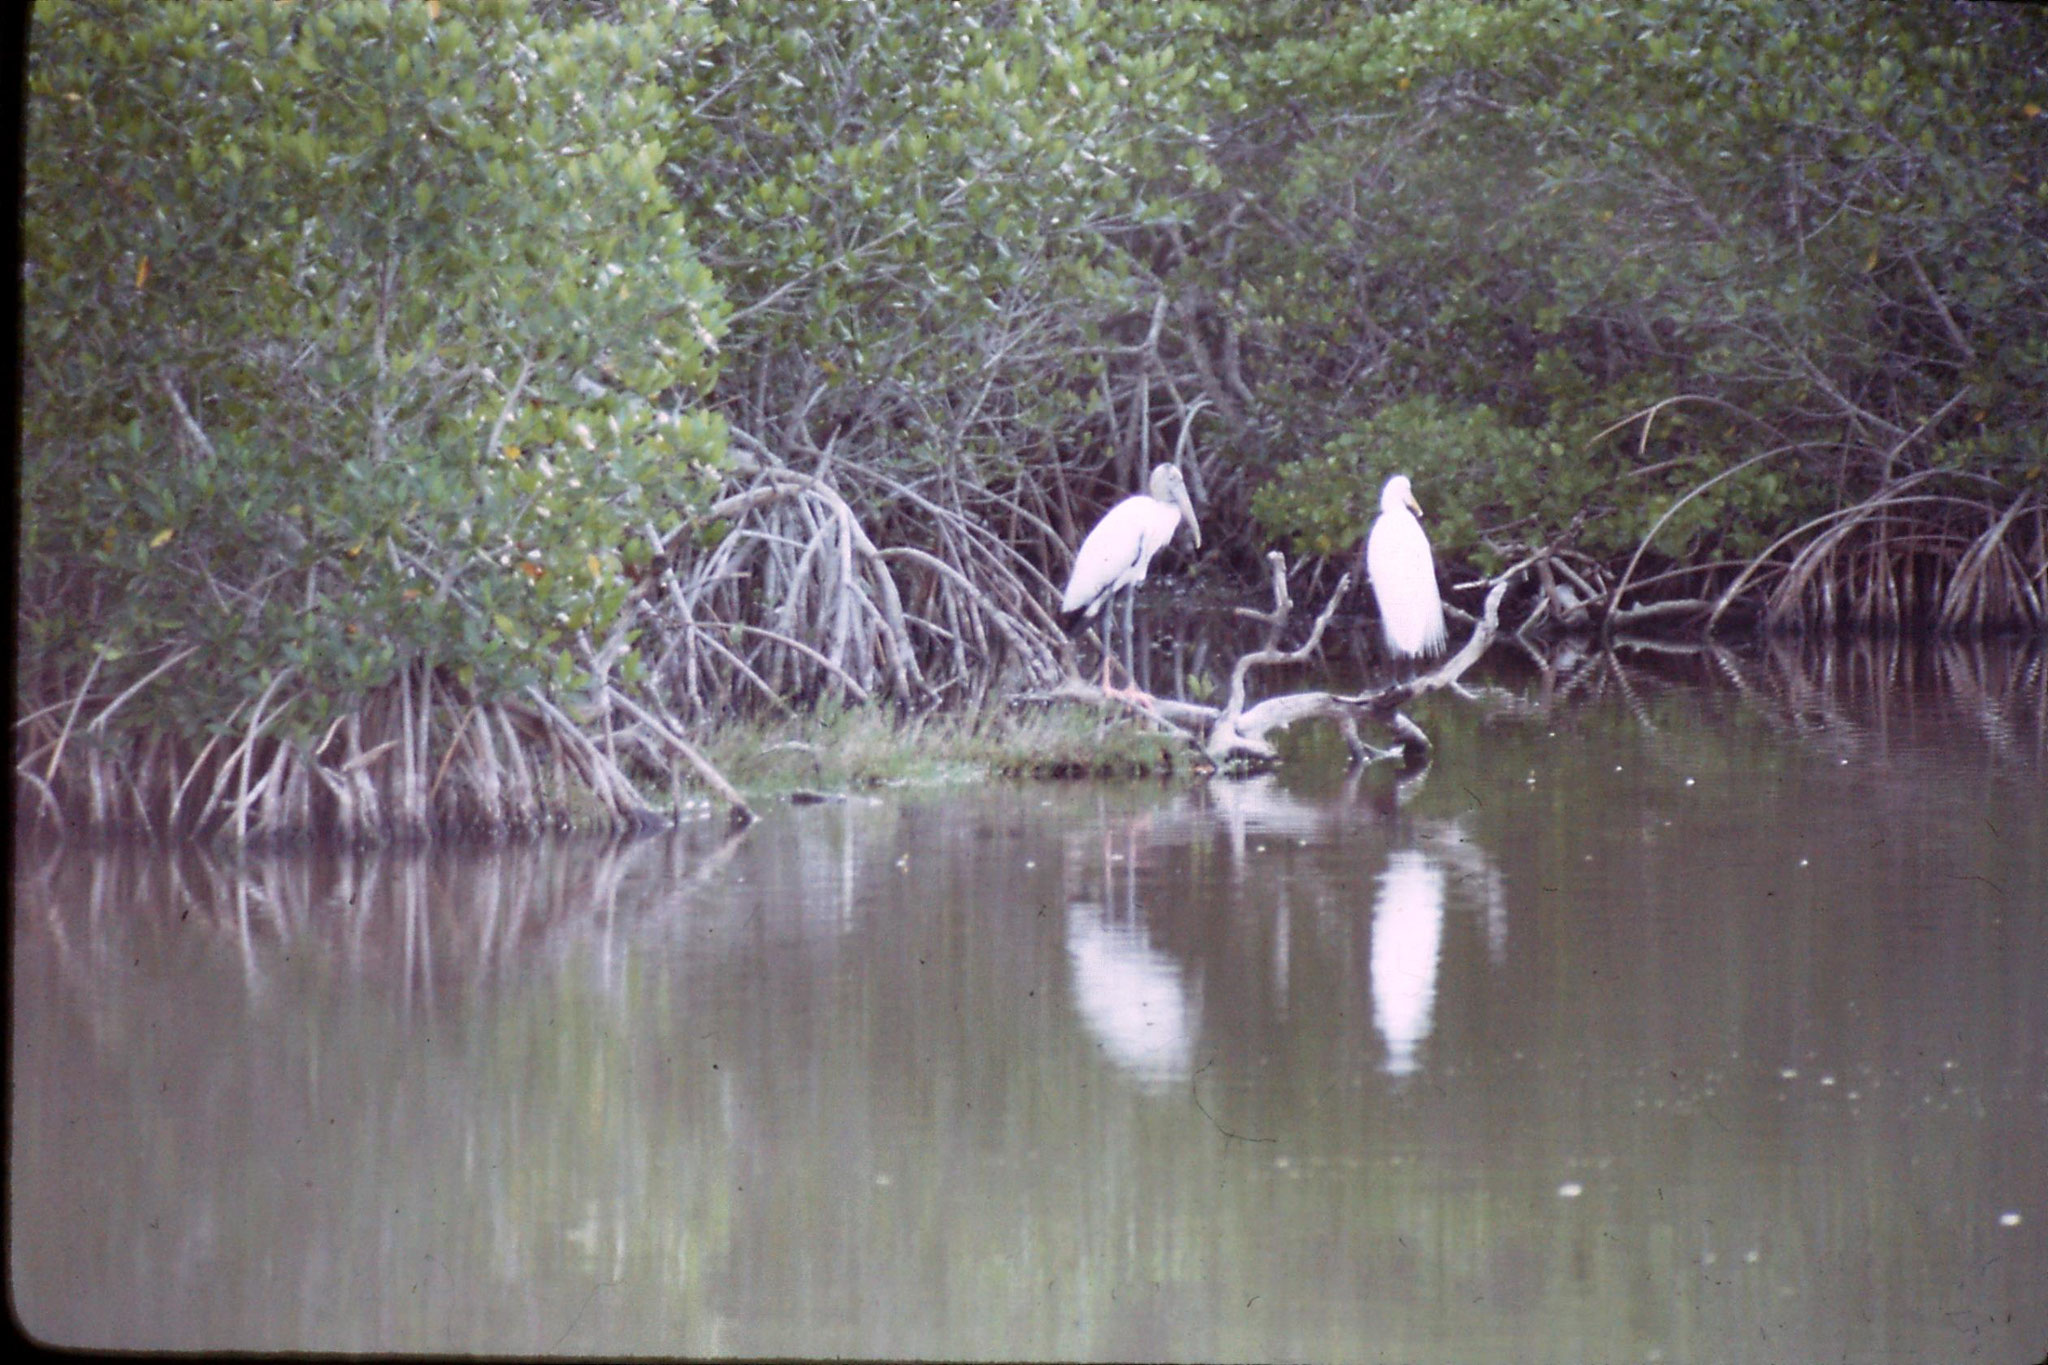 5/1/1991: 26: woodstork and great egret